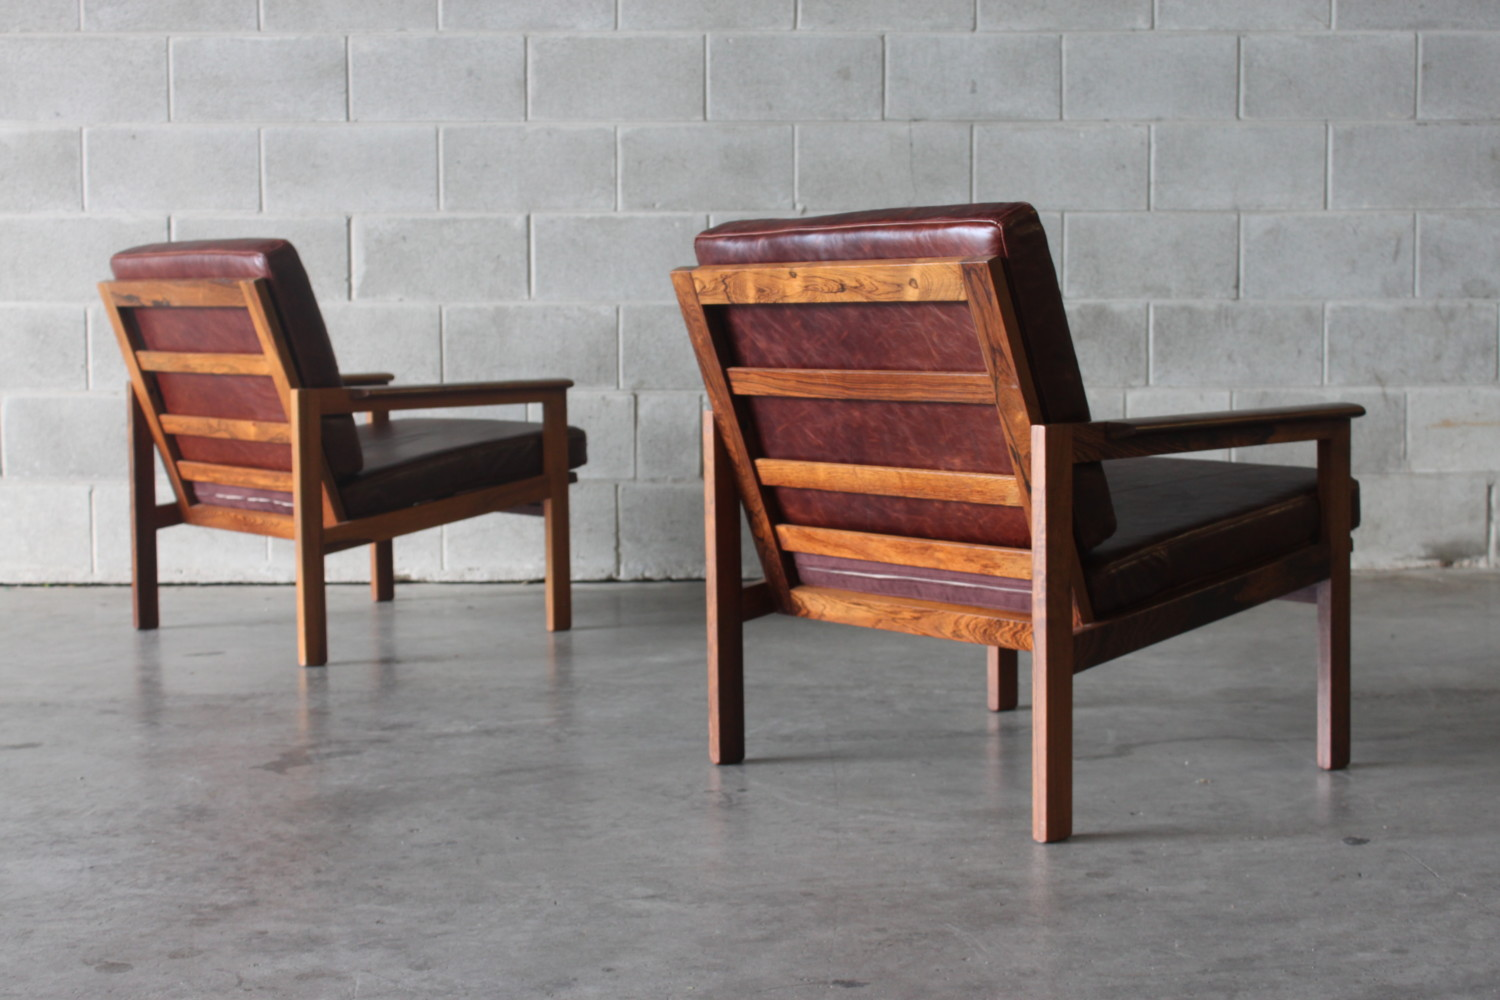 Rosewood Armchairs by Illum Wikkelso